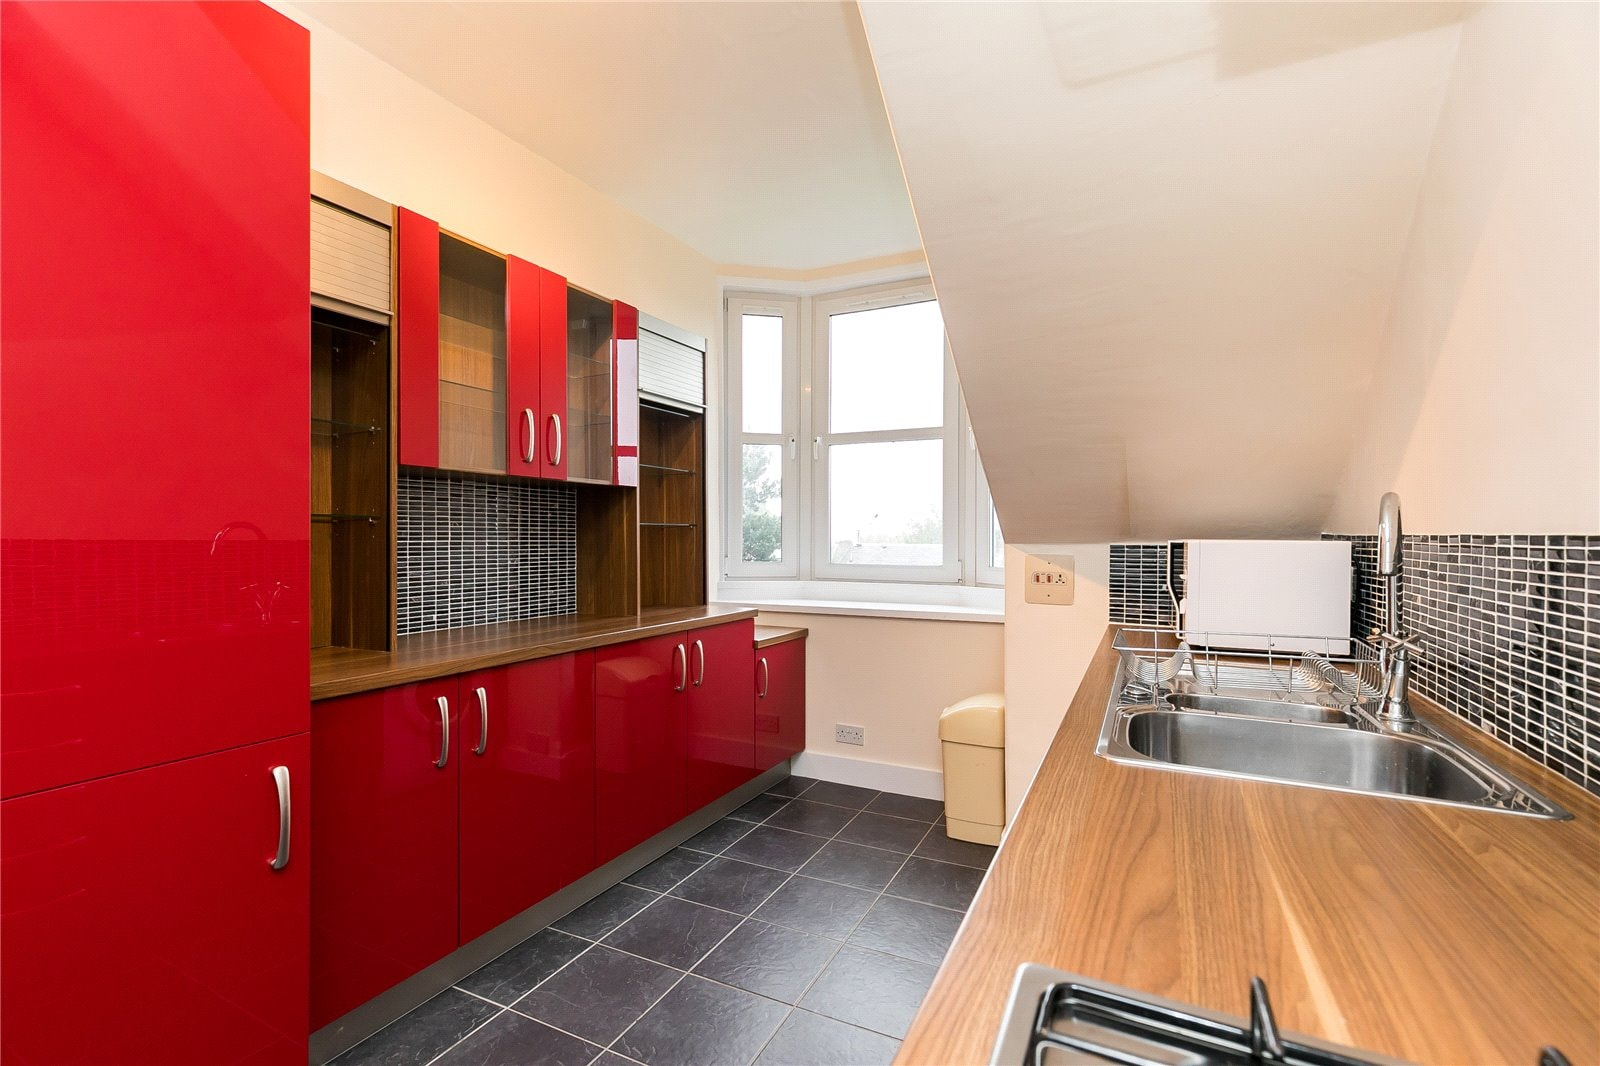 Bedroom Flats For Sale In Aberdeen City Centre